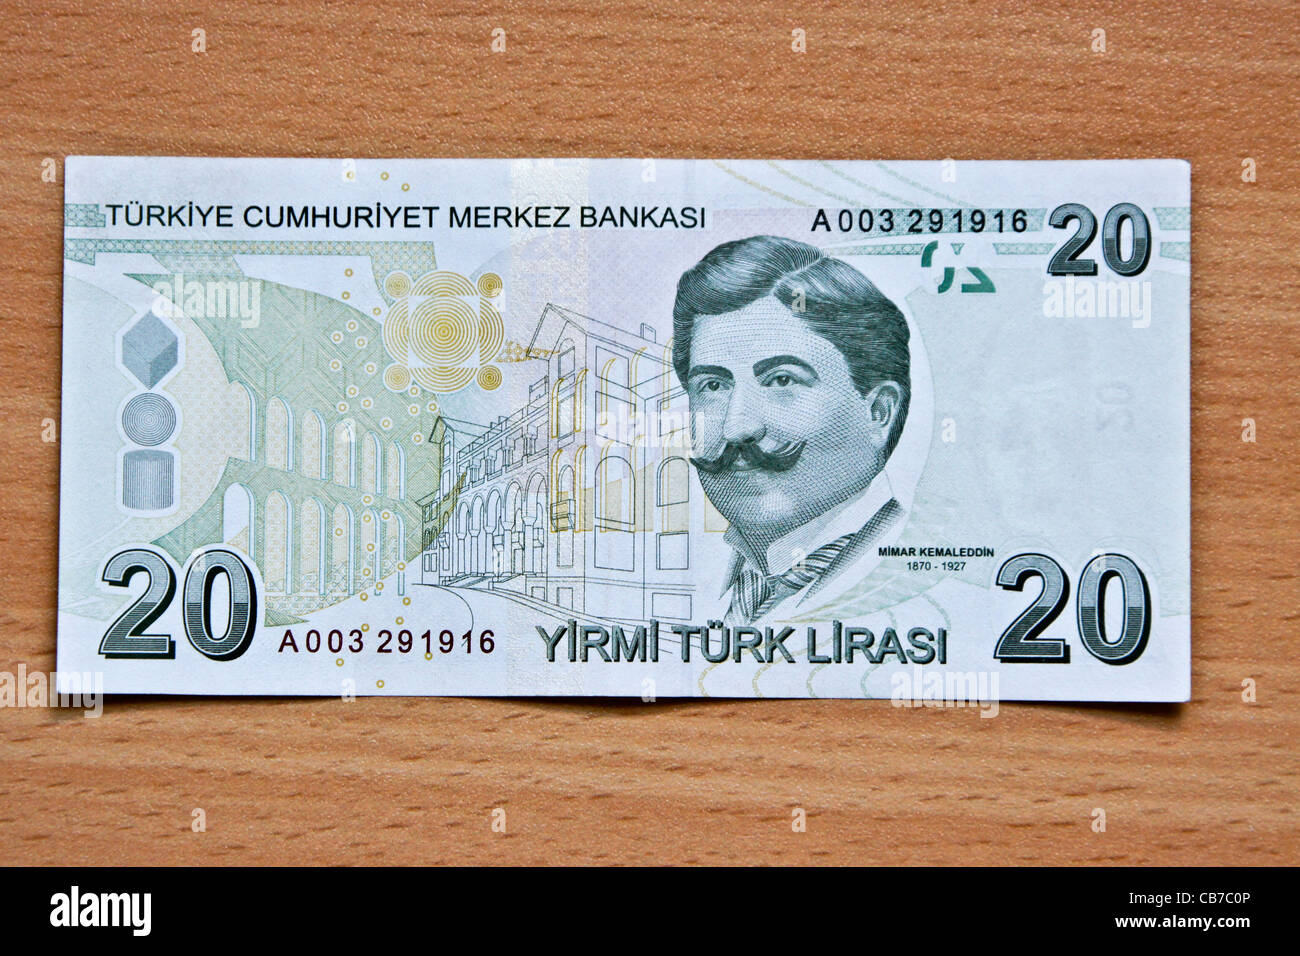 Reverse side of Turkish money (lira) Stock Photo